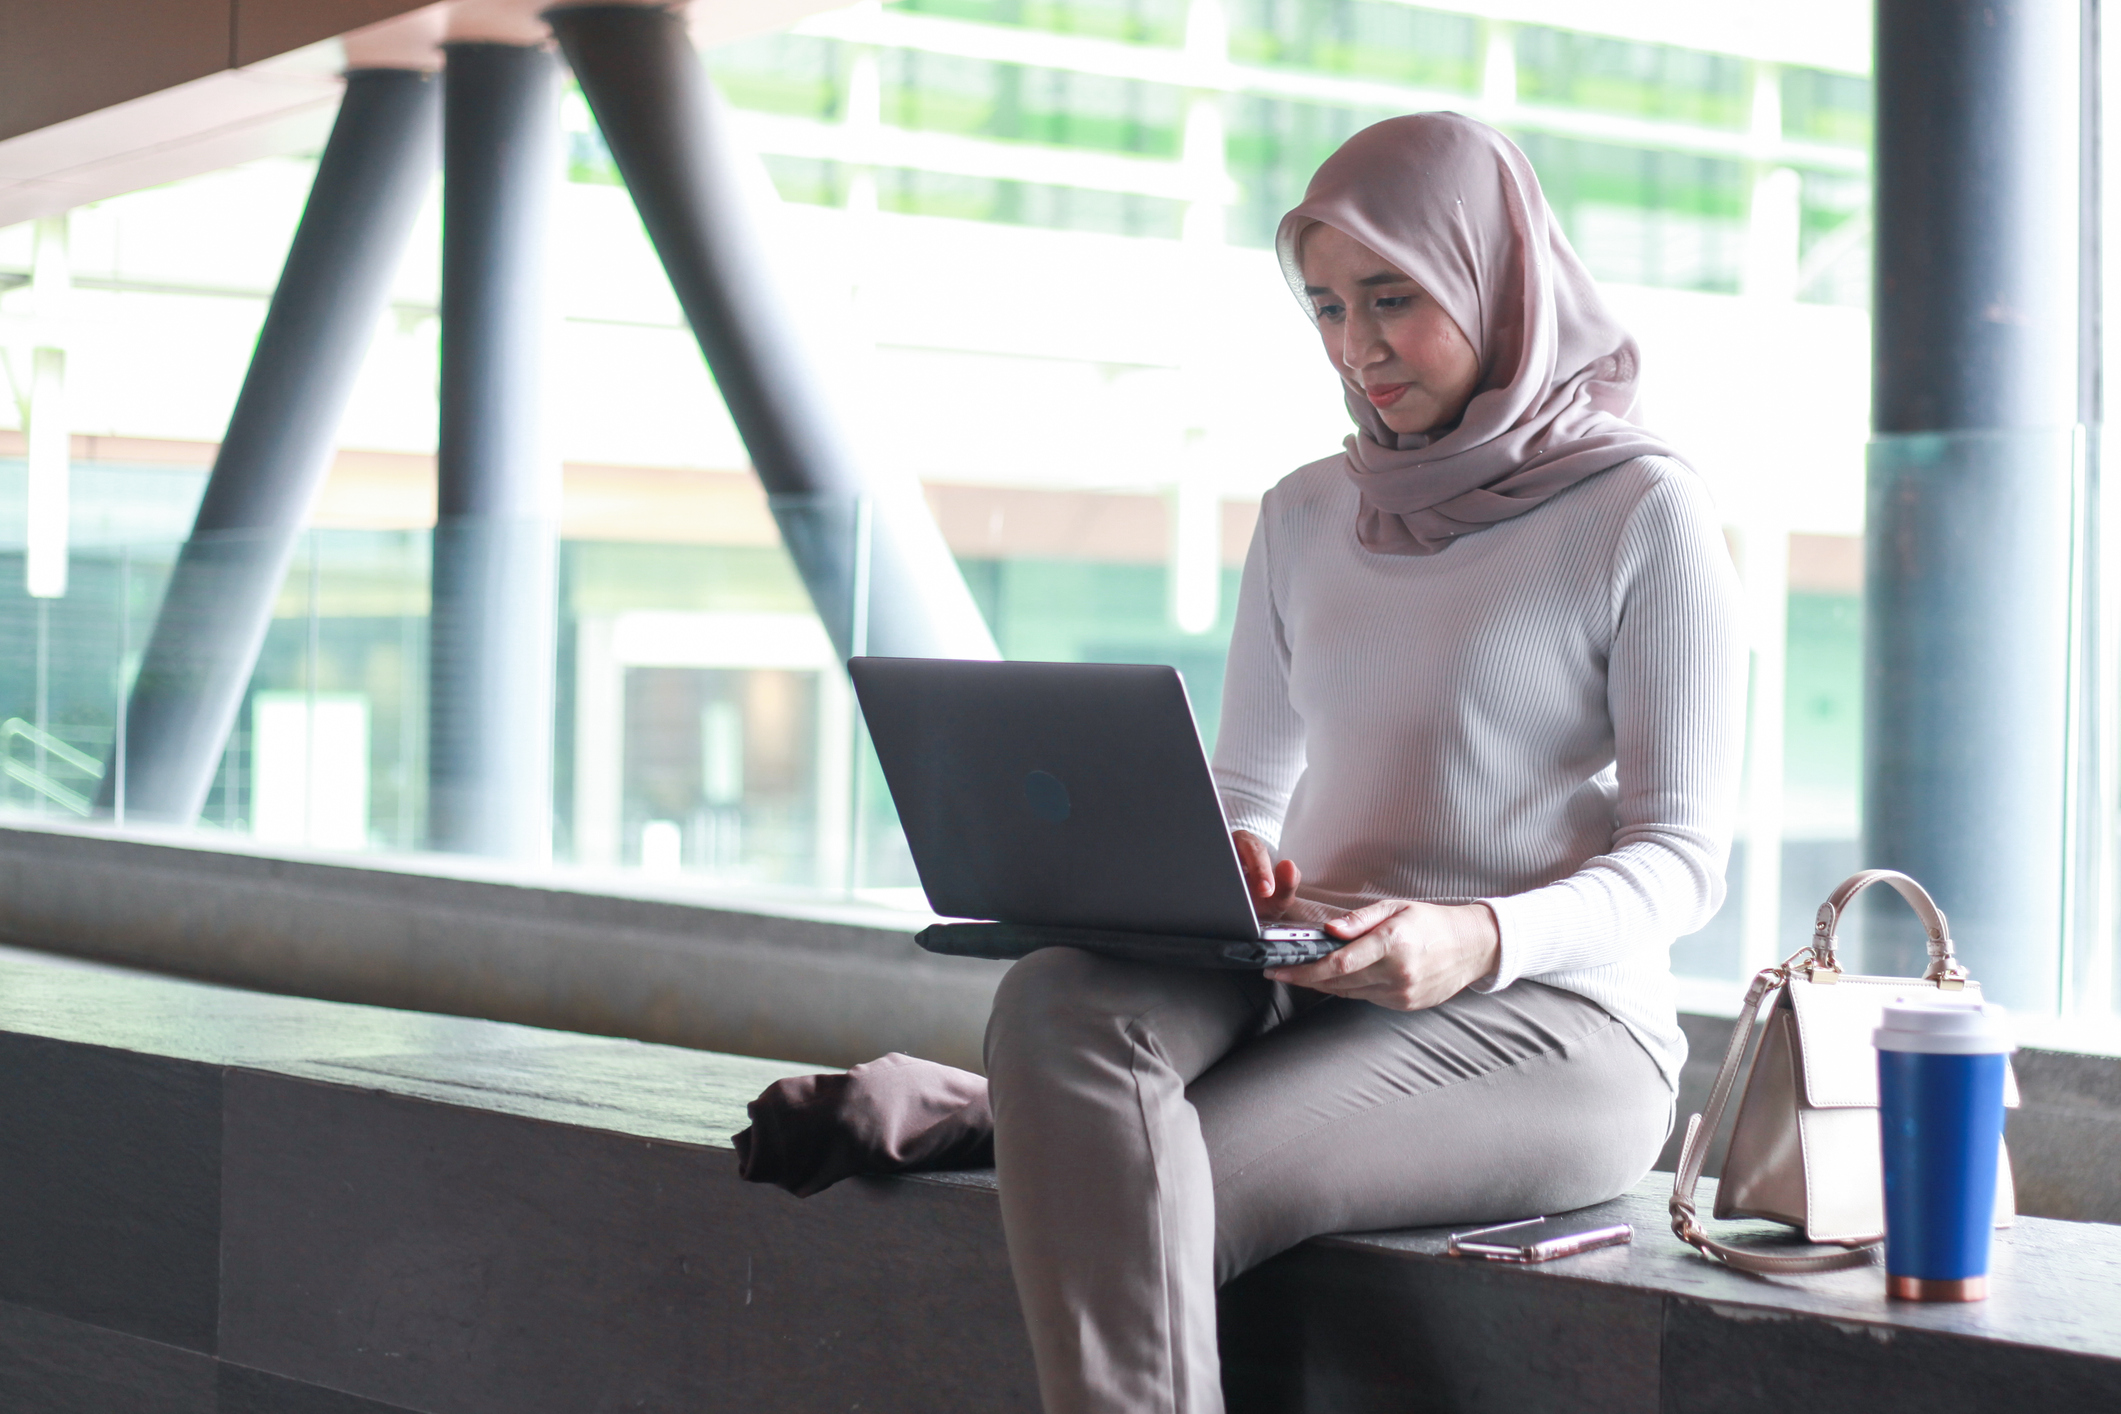 EU Court rules hijab can be banned at work